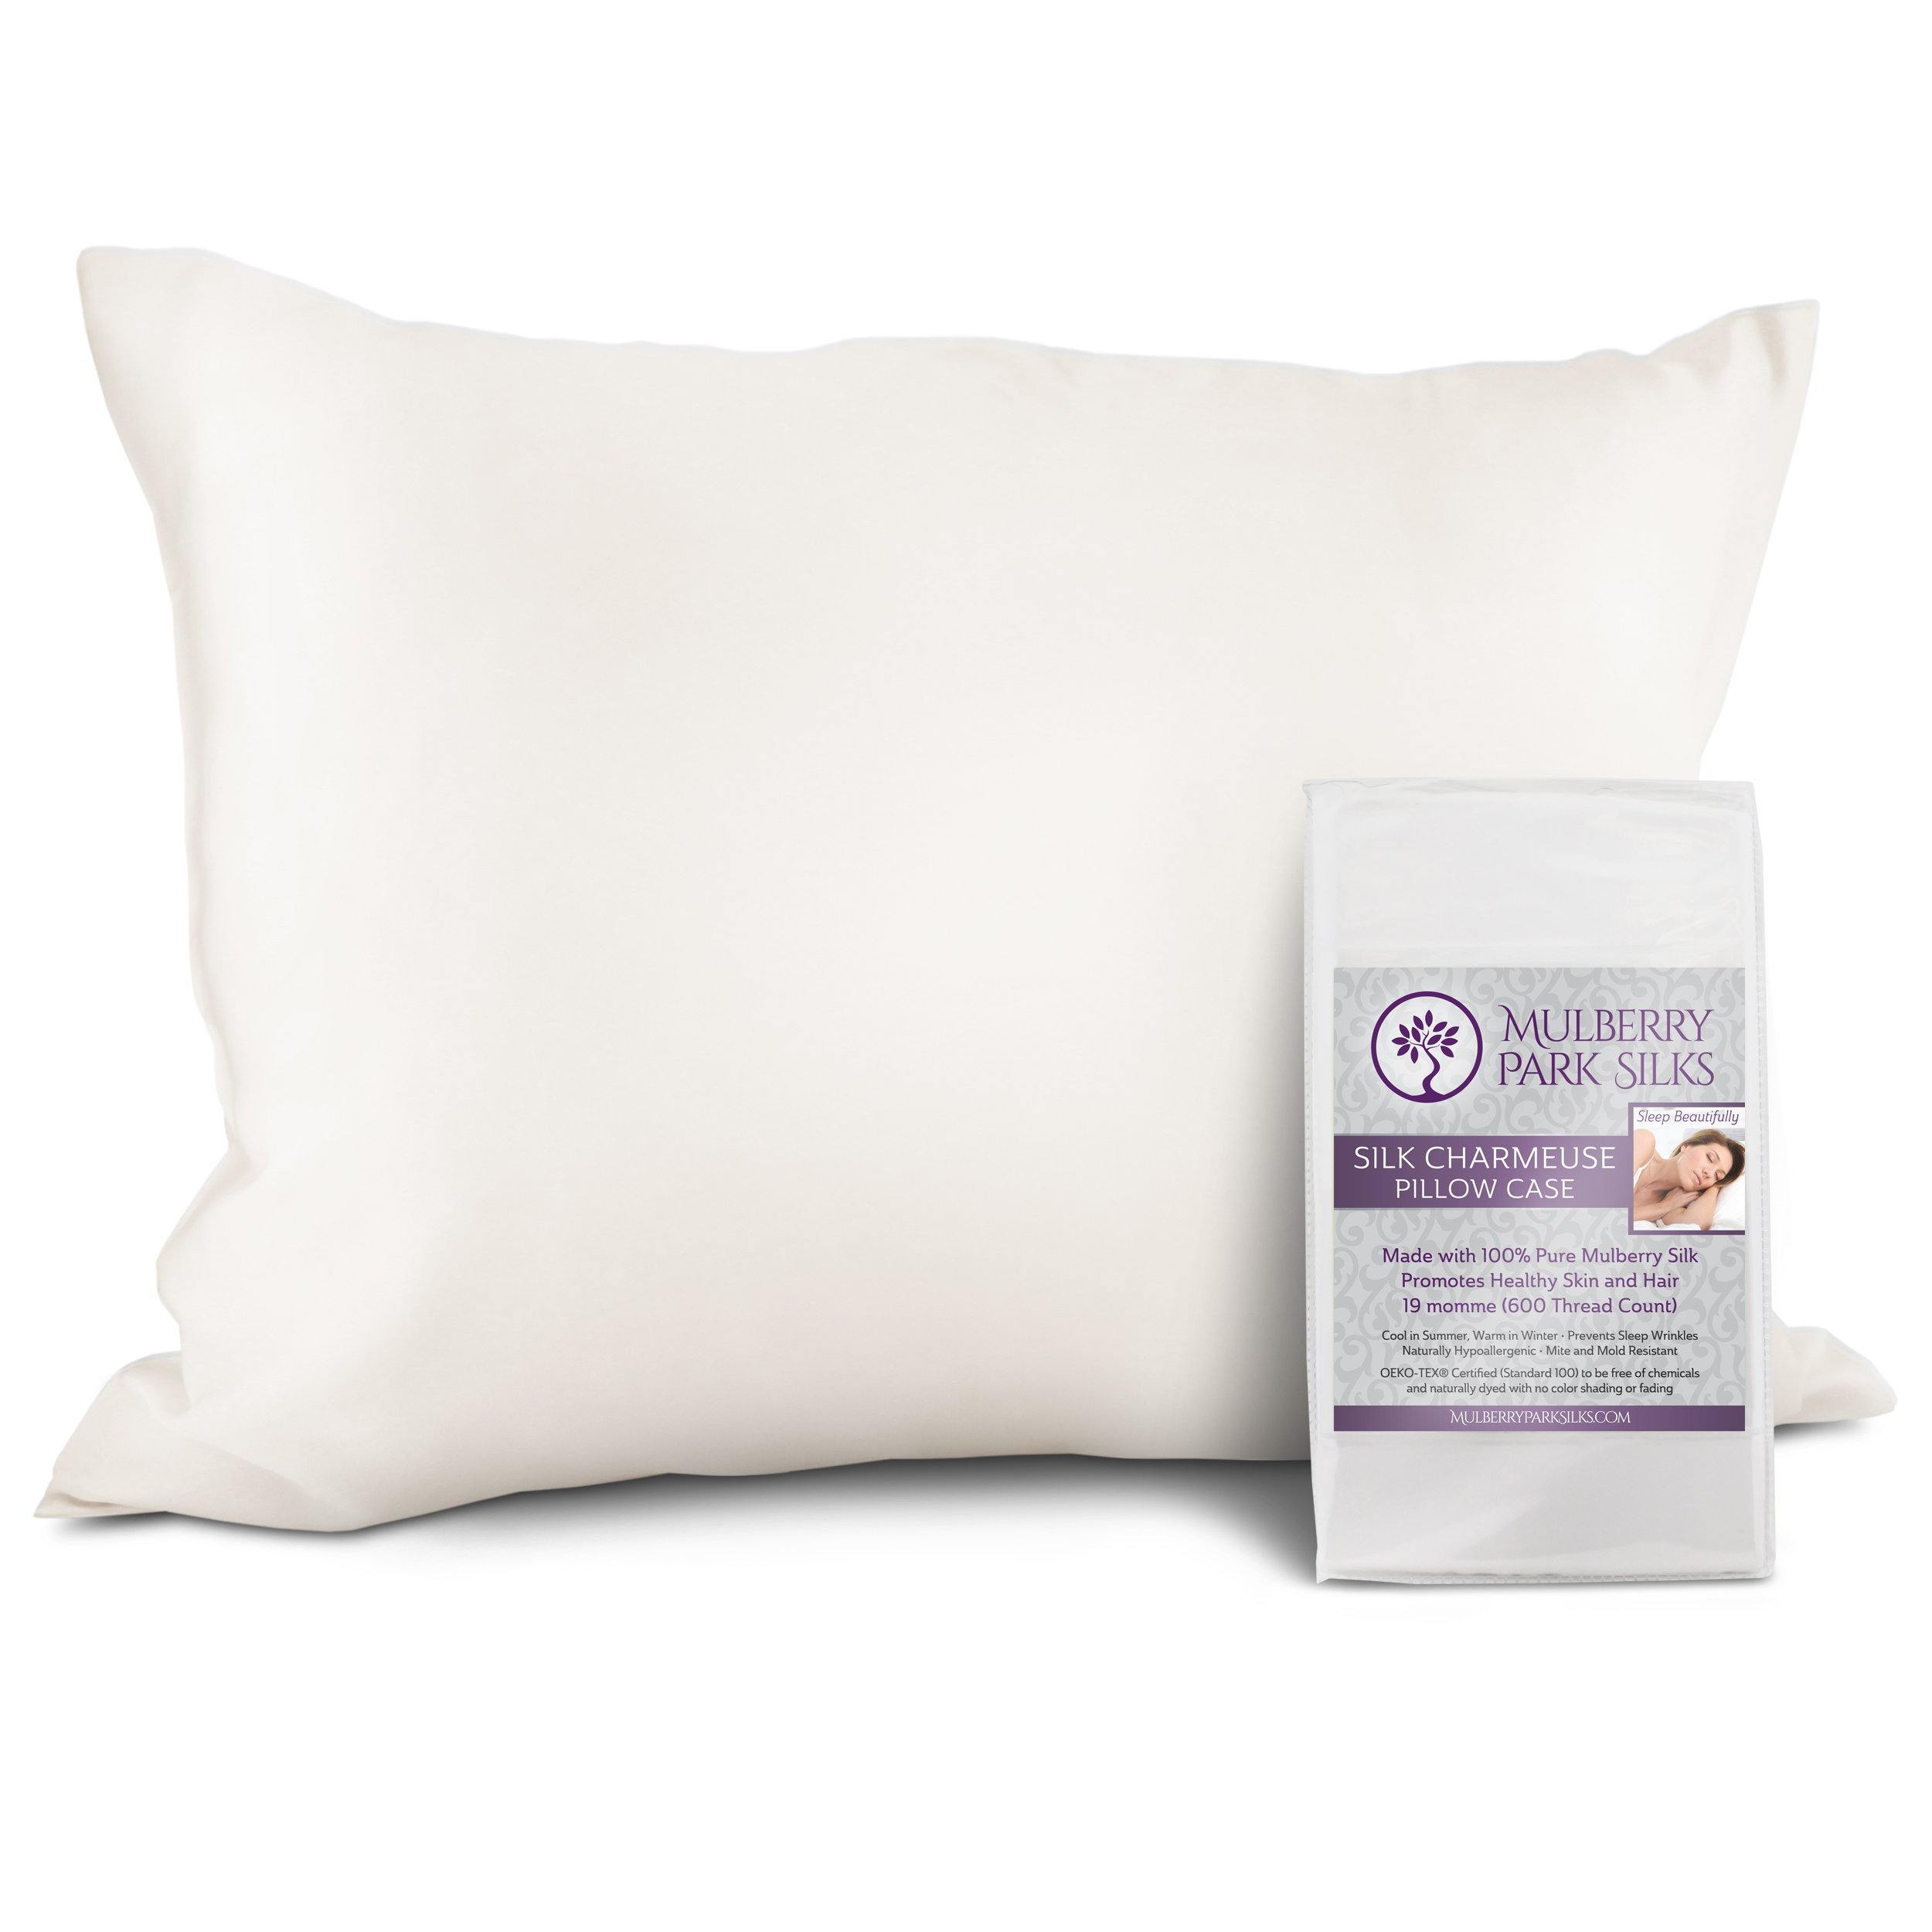 Pure Silk Pillowcase, 100% Mulberry Silk, OEKO-TEX